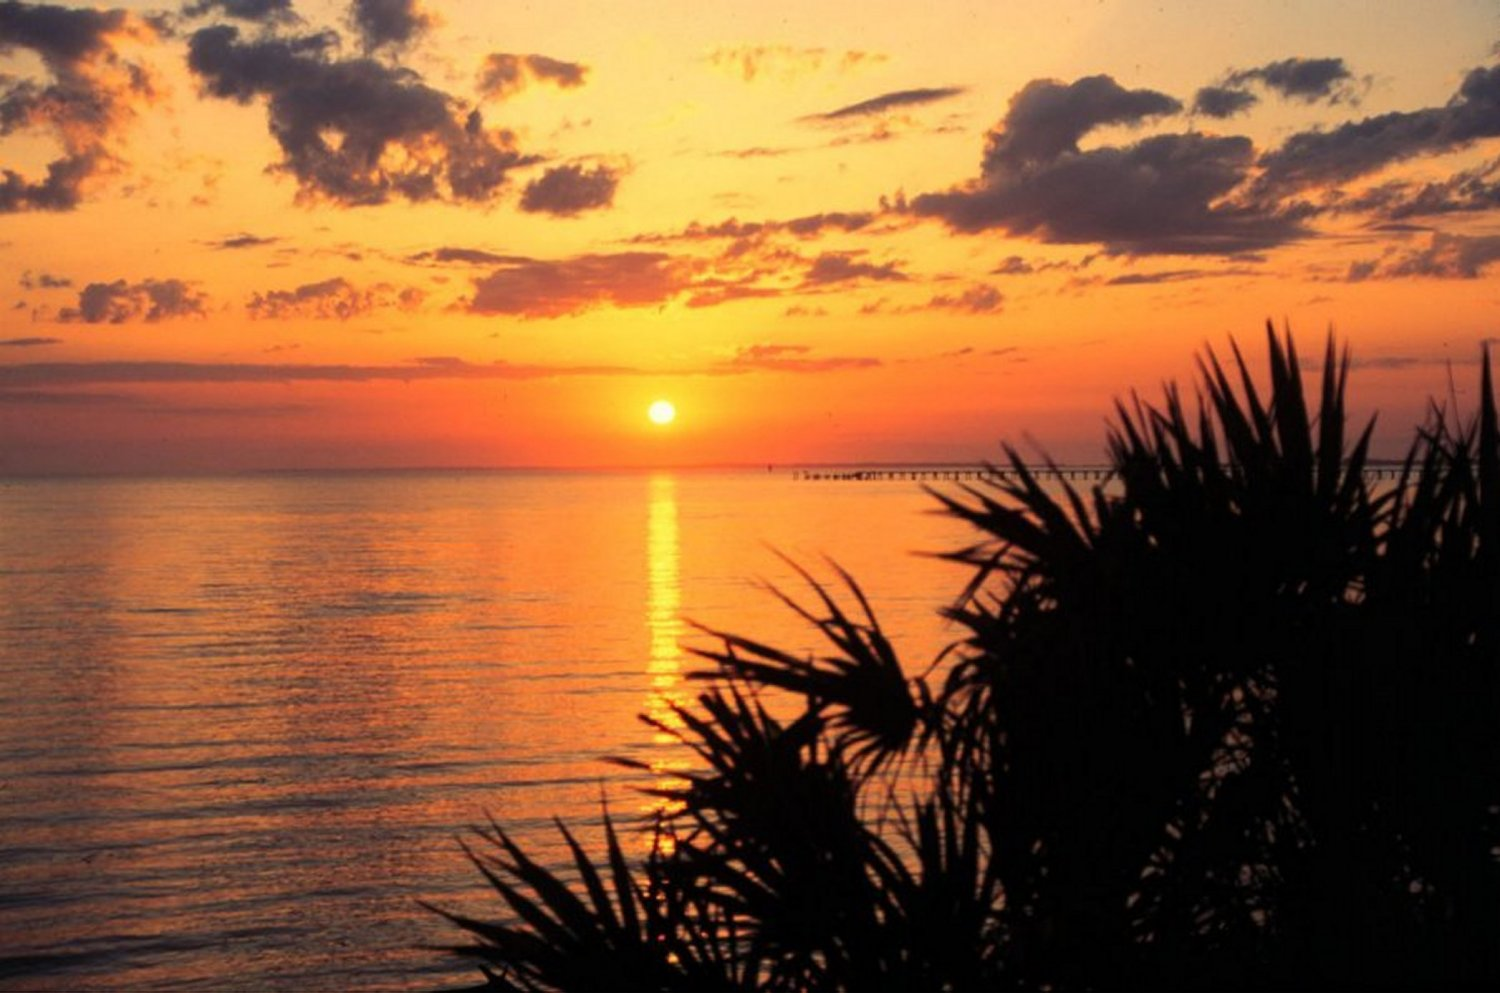 A view of a sunset and pier at Apalachicola Bay Aquatic Preserve